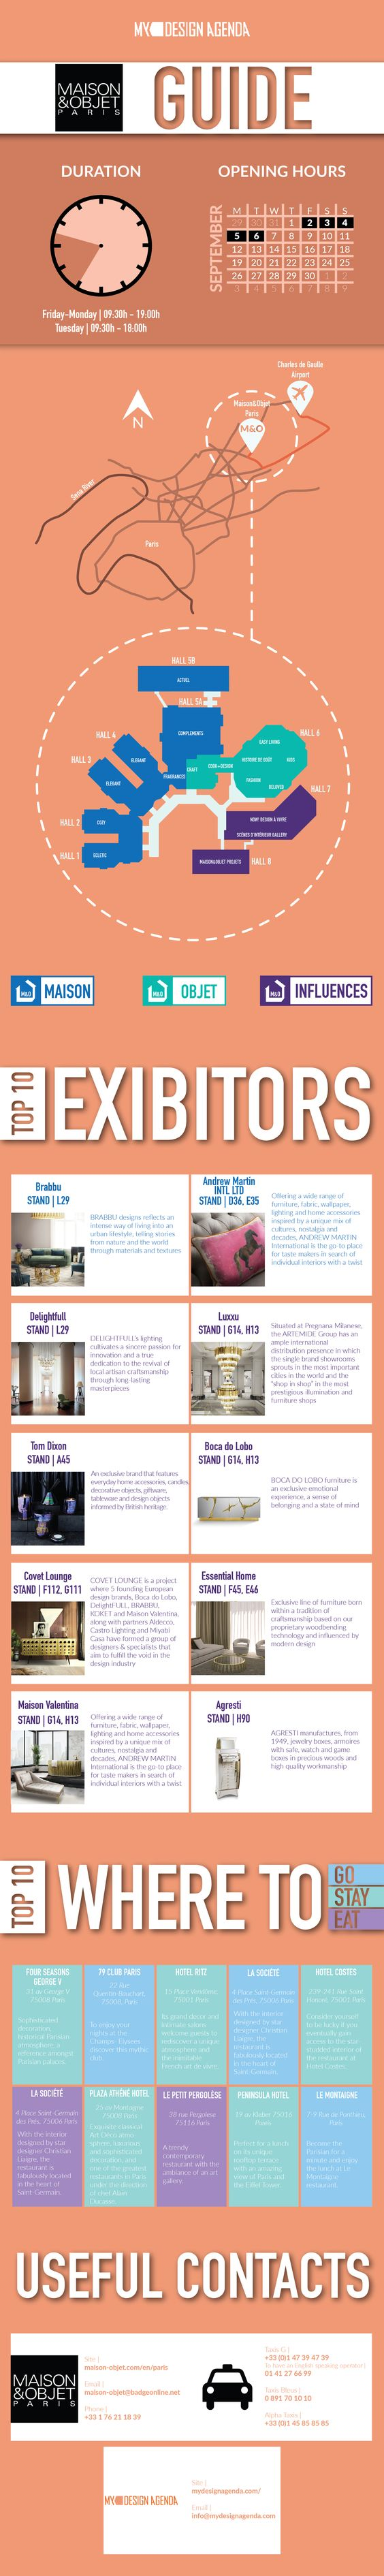 Do you want to know what are the highlights of Maison&Objet Paris? Check out this new infographic where you can find the top 10 exhibitors, top 10 places to go, eat and stay, as well as some important contacts in case you need to ask some questions or call a cab, once you are getting there. Click to download! | #MO16 #interiordesign #infograph